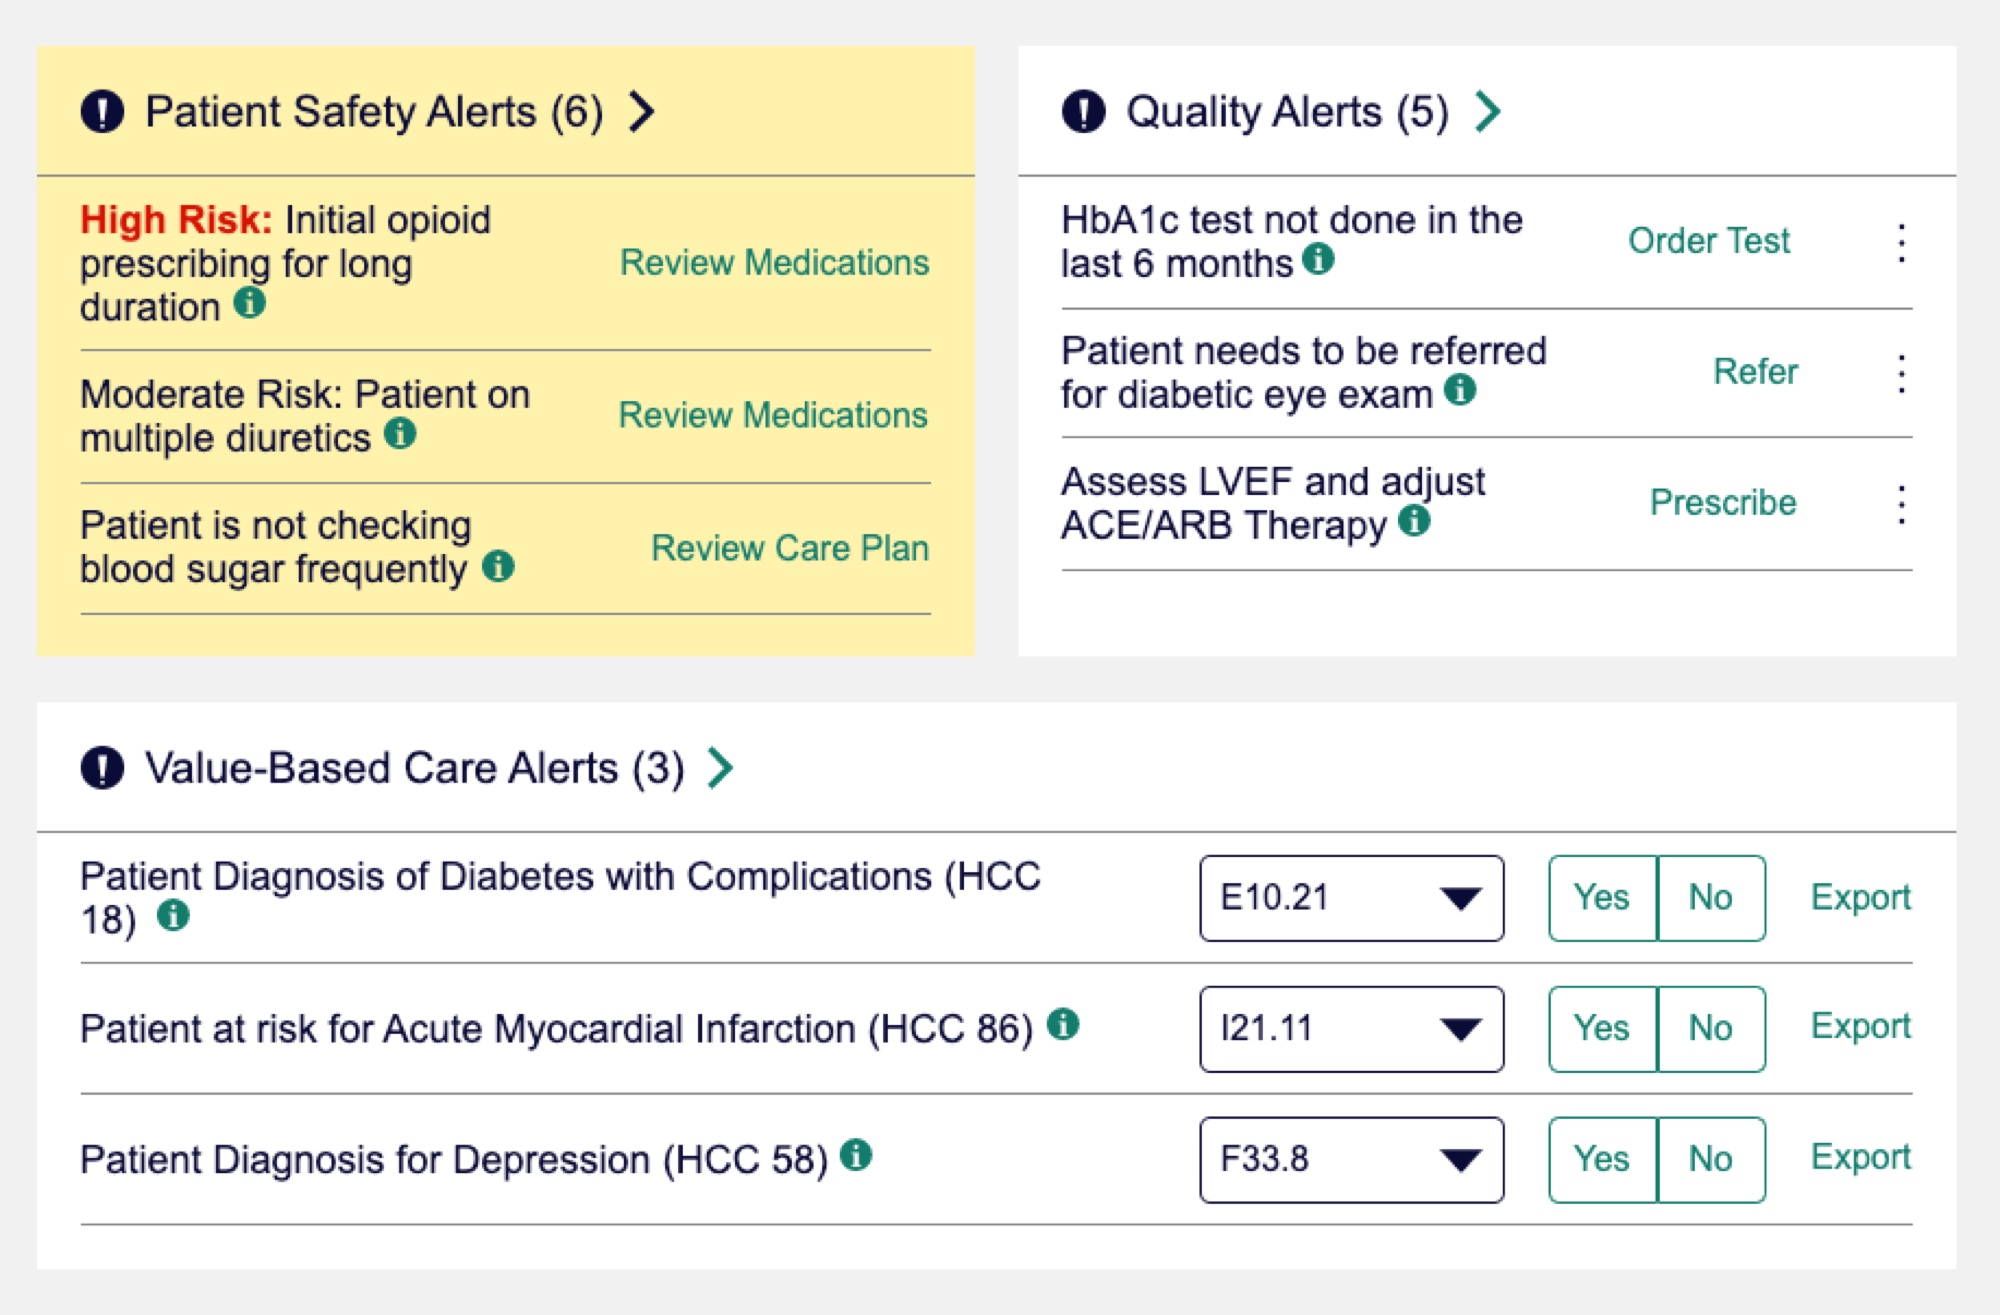 Screen from Clinic 360 showing Patient Safety Alerts, Quality Alerts and Value Based Care Alerts for an individual patient.